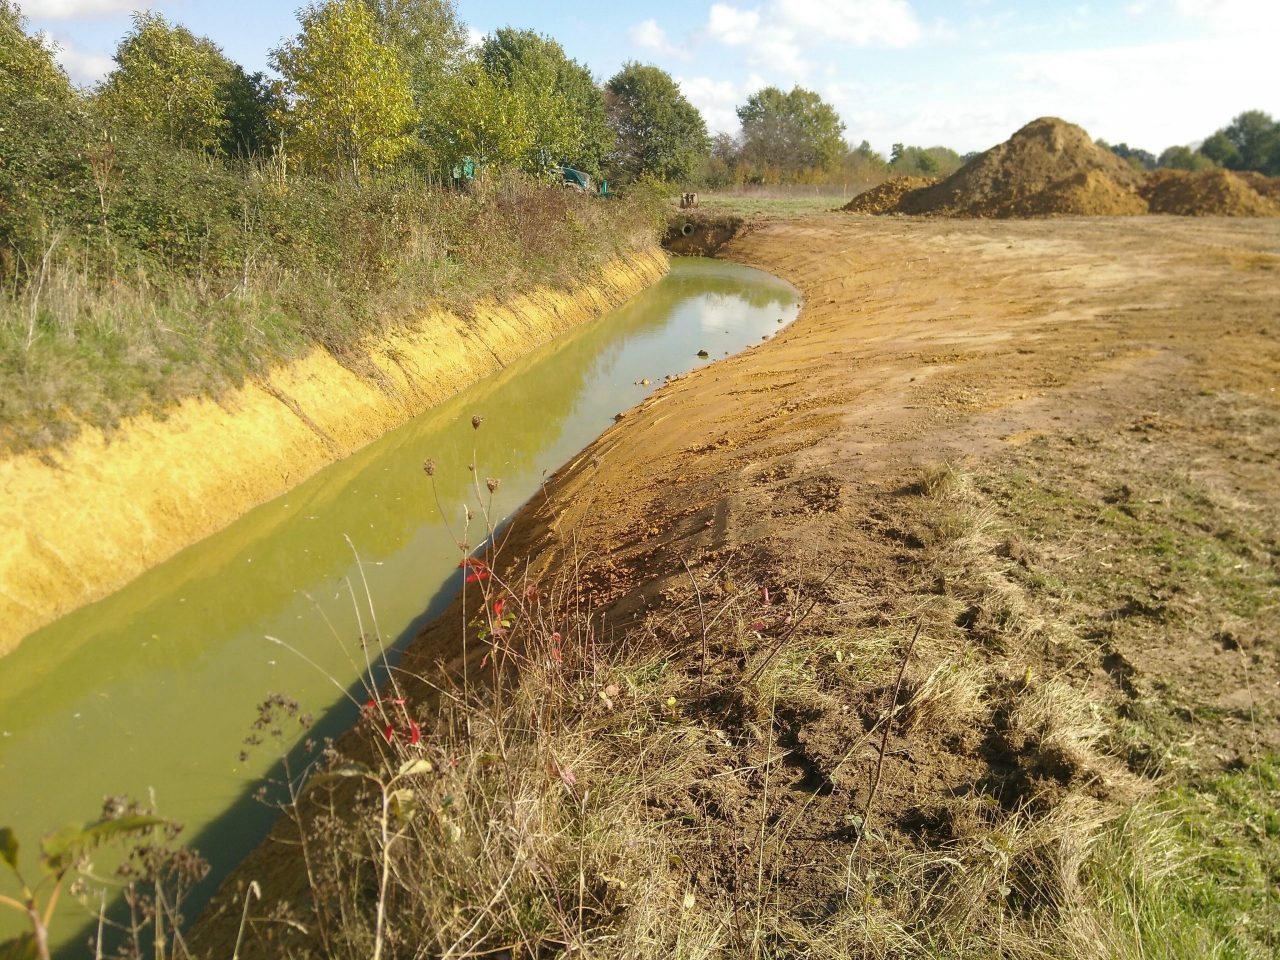 Enlarging the canal